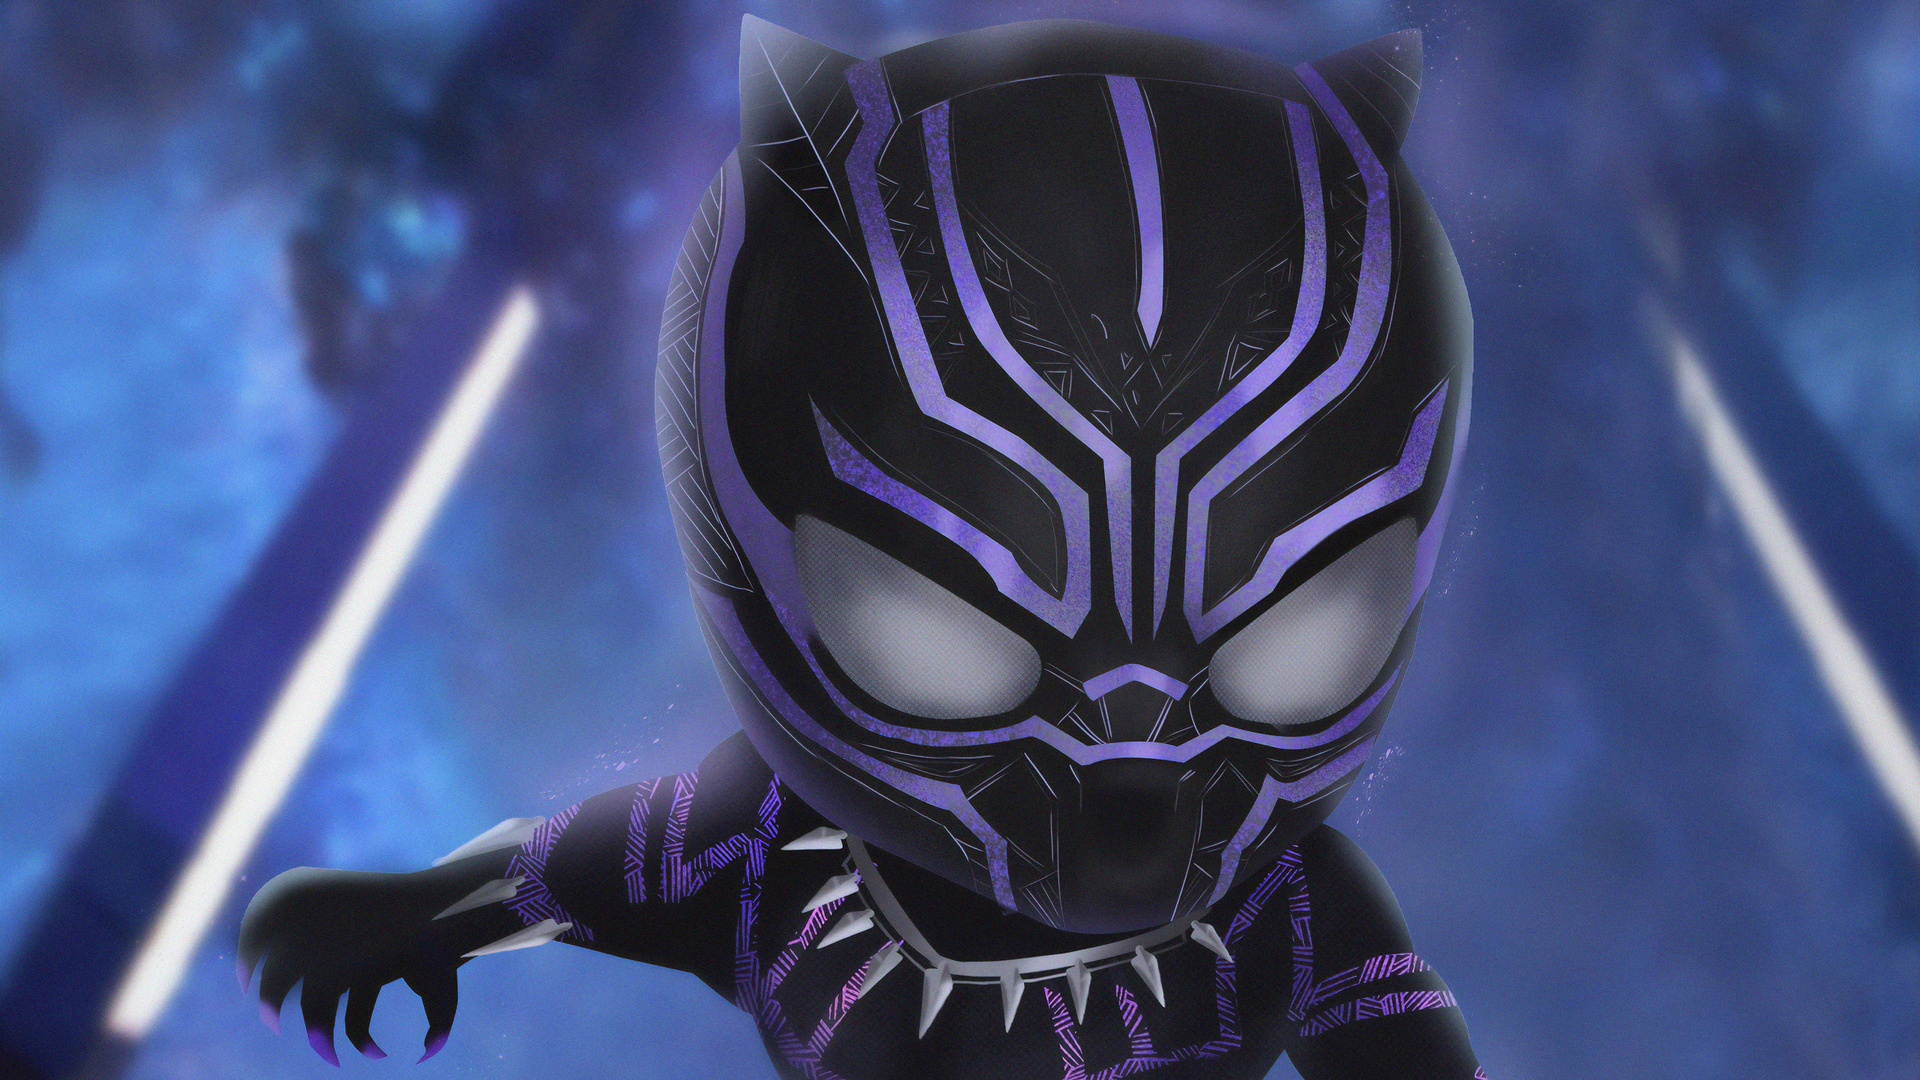 Wallpaper At Washington 1080p Black Panther Purple Wallpaper